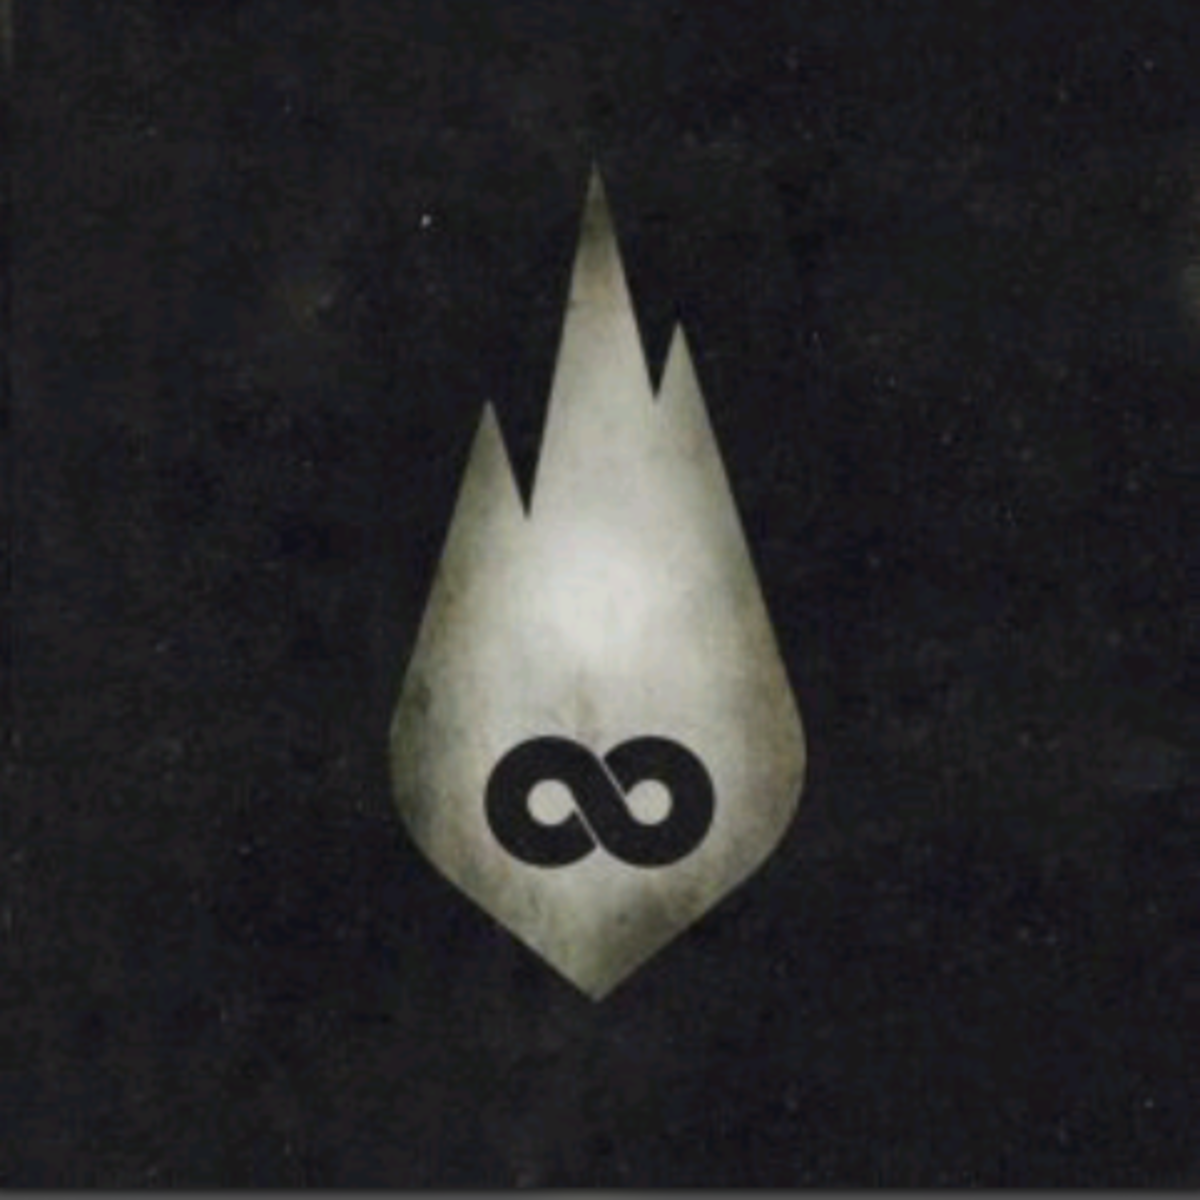 """The End is Where We Begin"" by Thousand Foot Krutch"